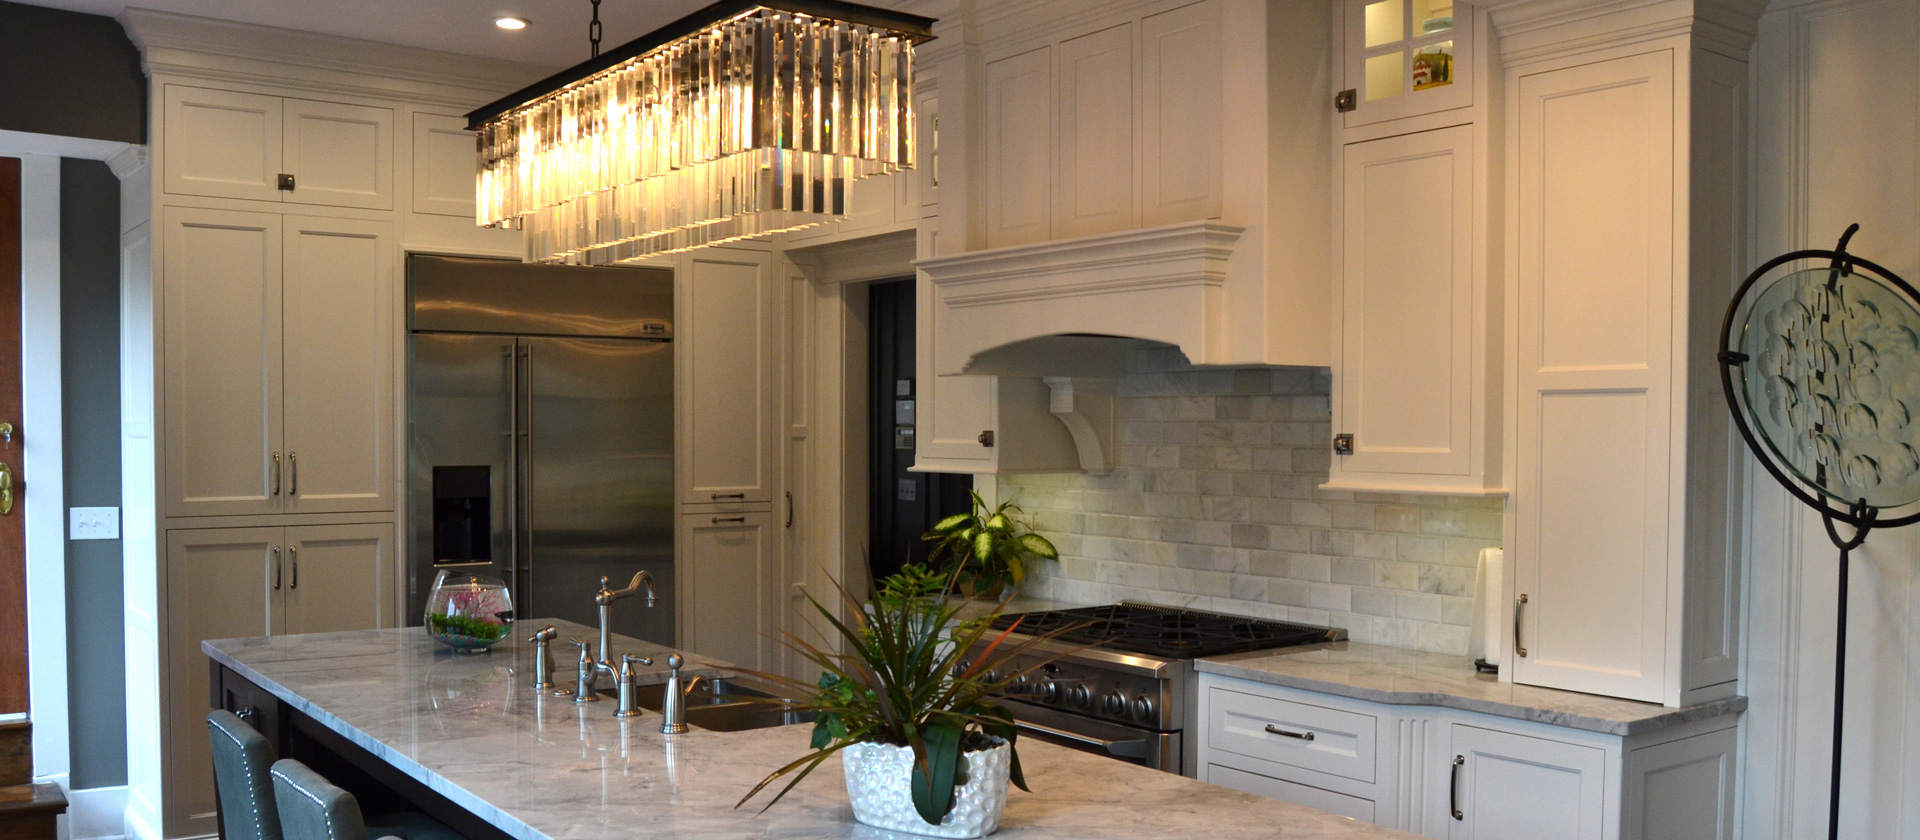 Welcome To Our Custom Kitchen Design ...